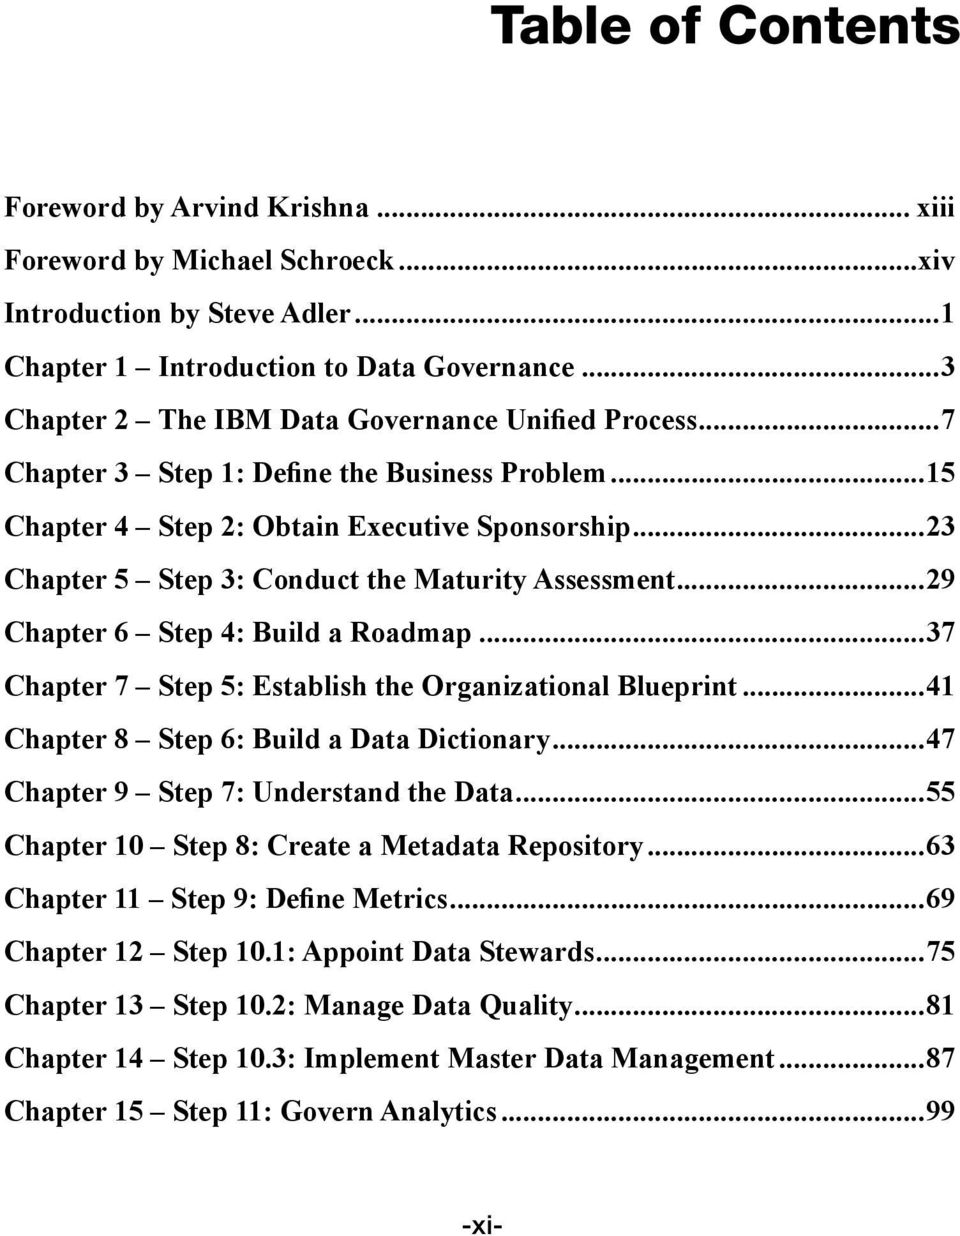 ..23 Chapter 5 Step 3: Conduct the Maturity Assessment...29 Chapter 6 Step 4: Build a Roadmap...37 Chapter 7 Step 5: Establish the Organizational Blueprint.